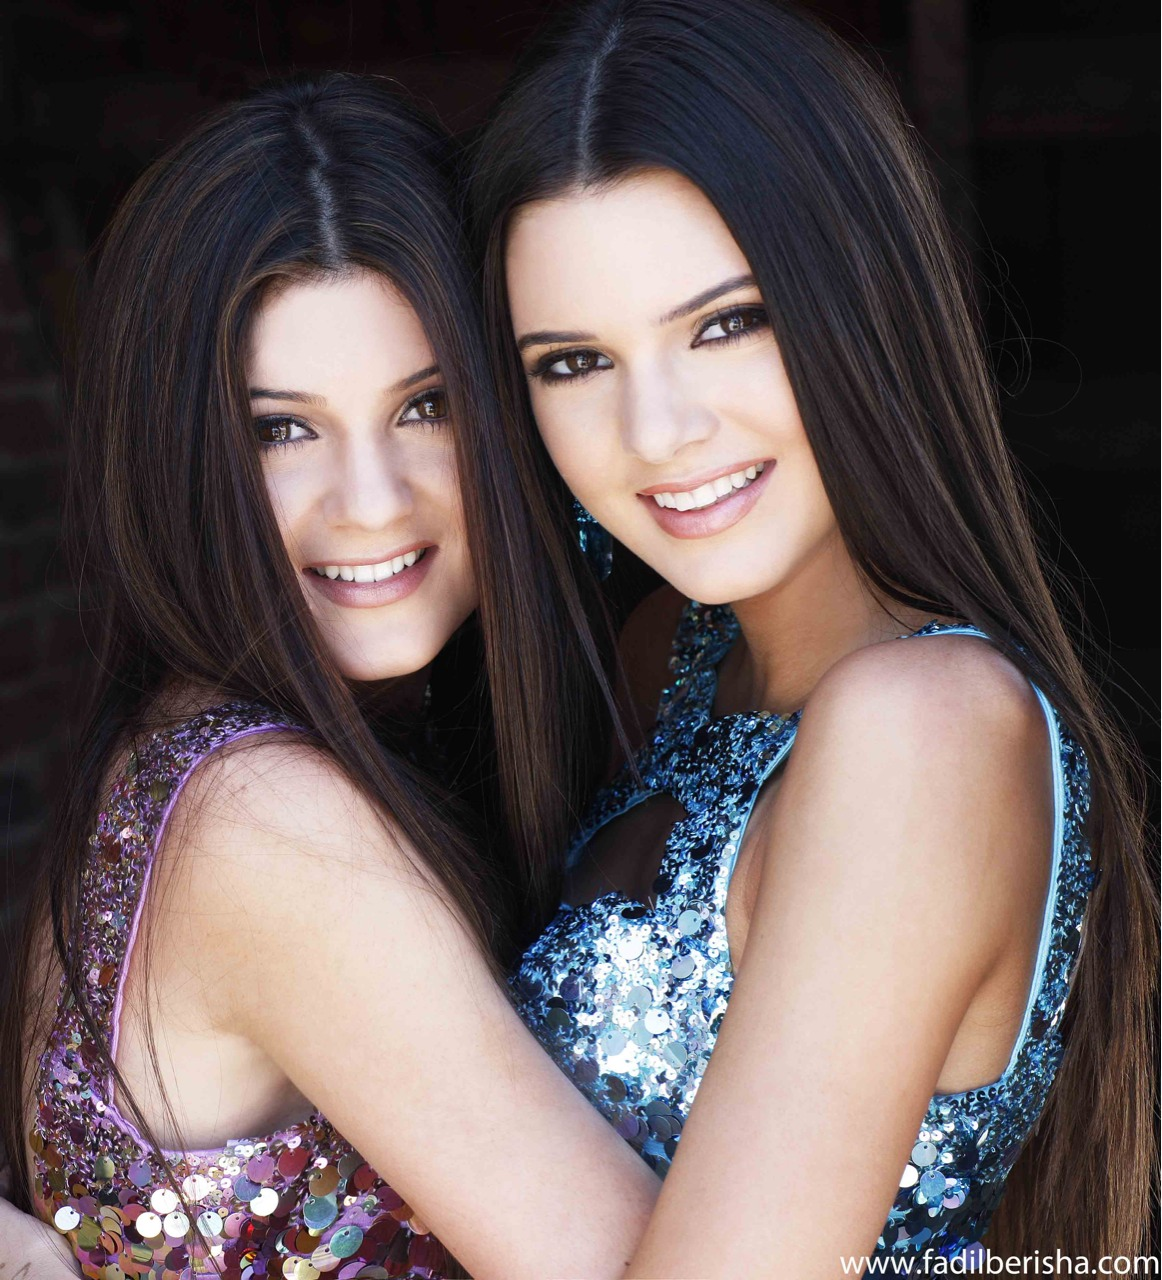 Kylie jenner images kendall amp kylie sherri hill photoshoot 2011 hd